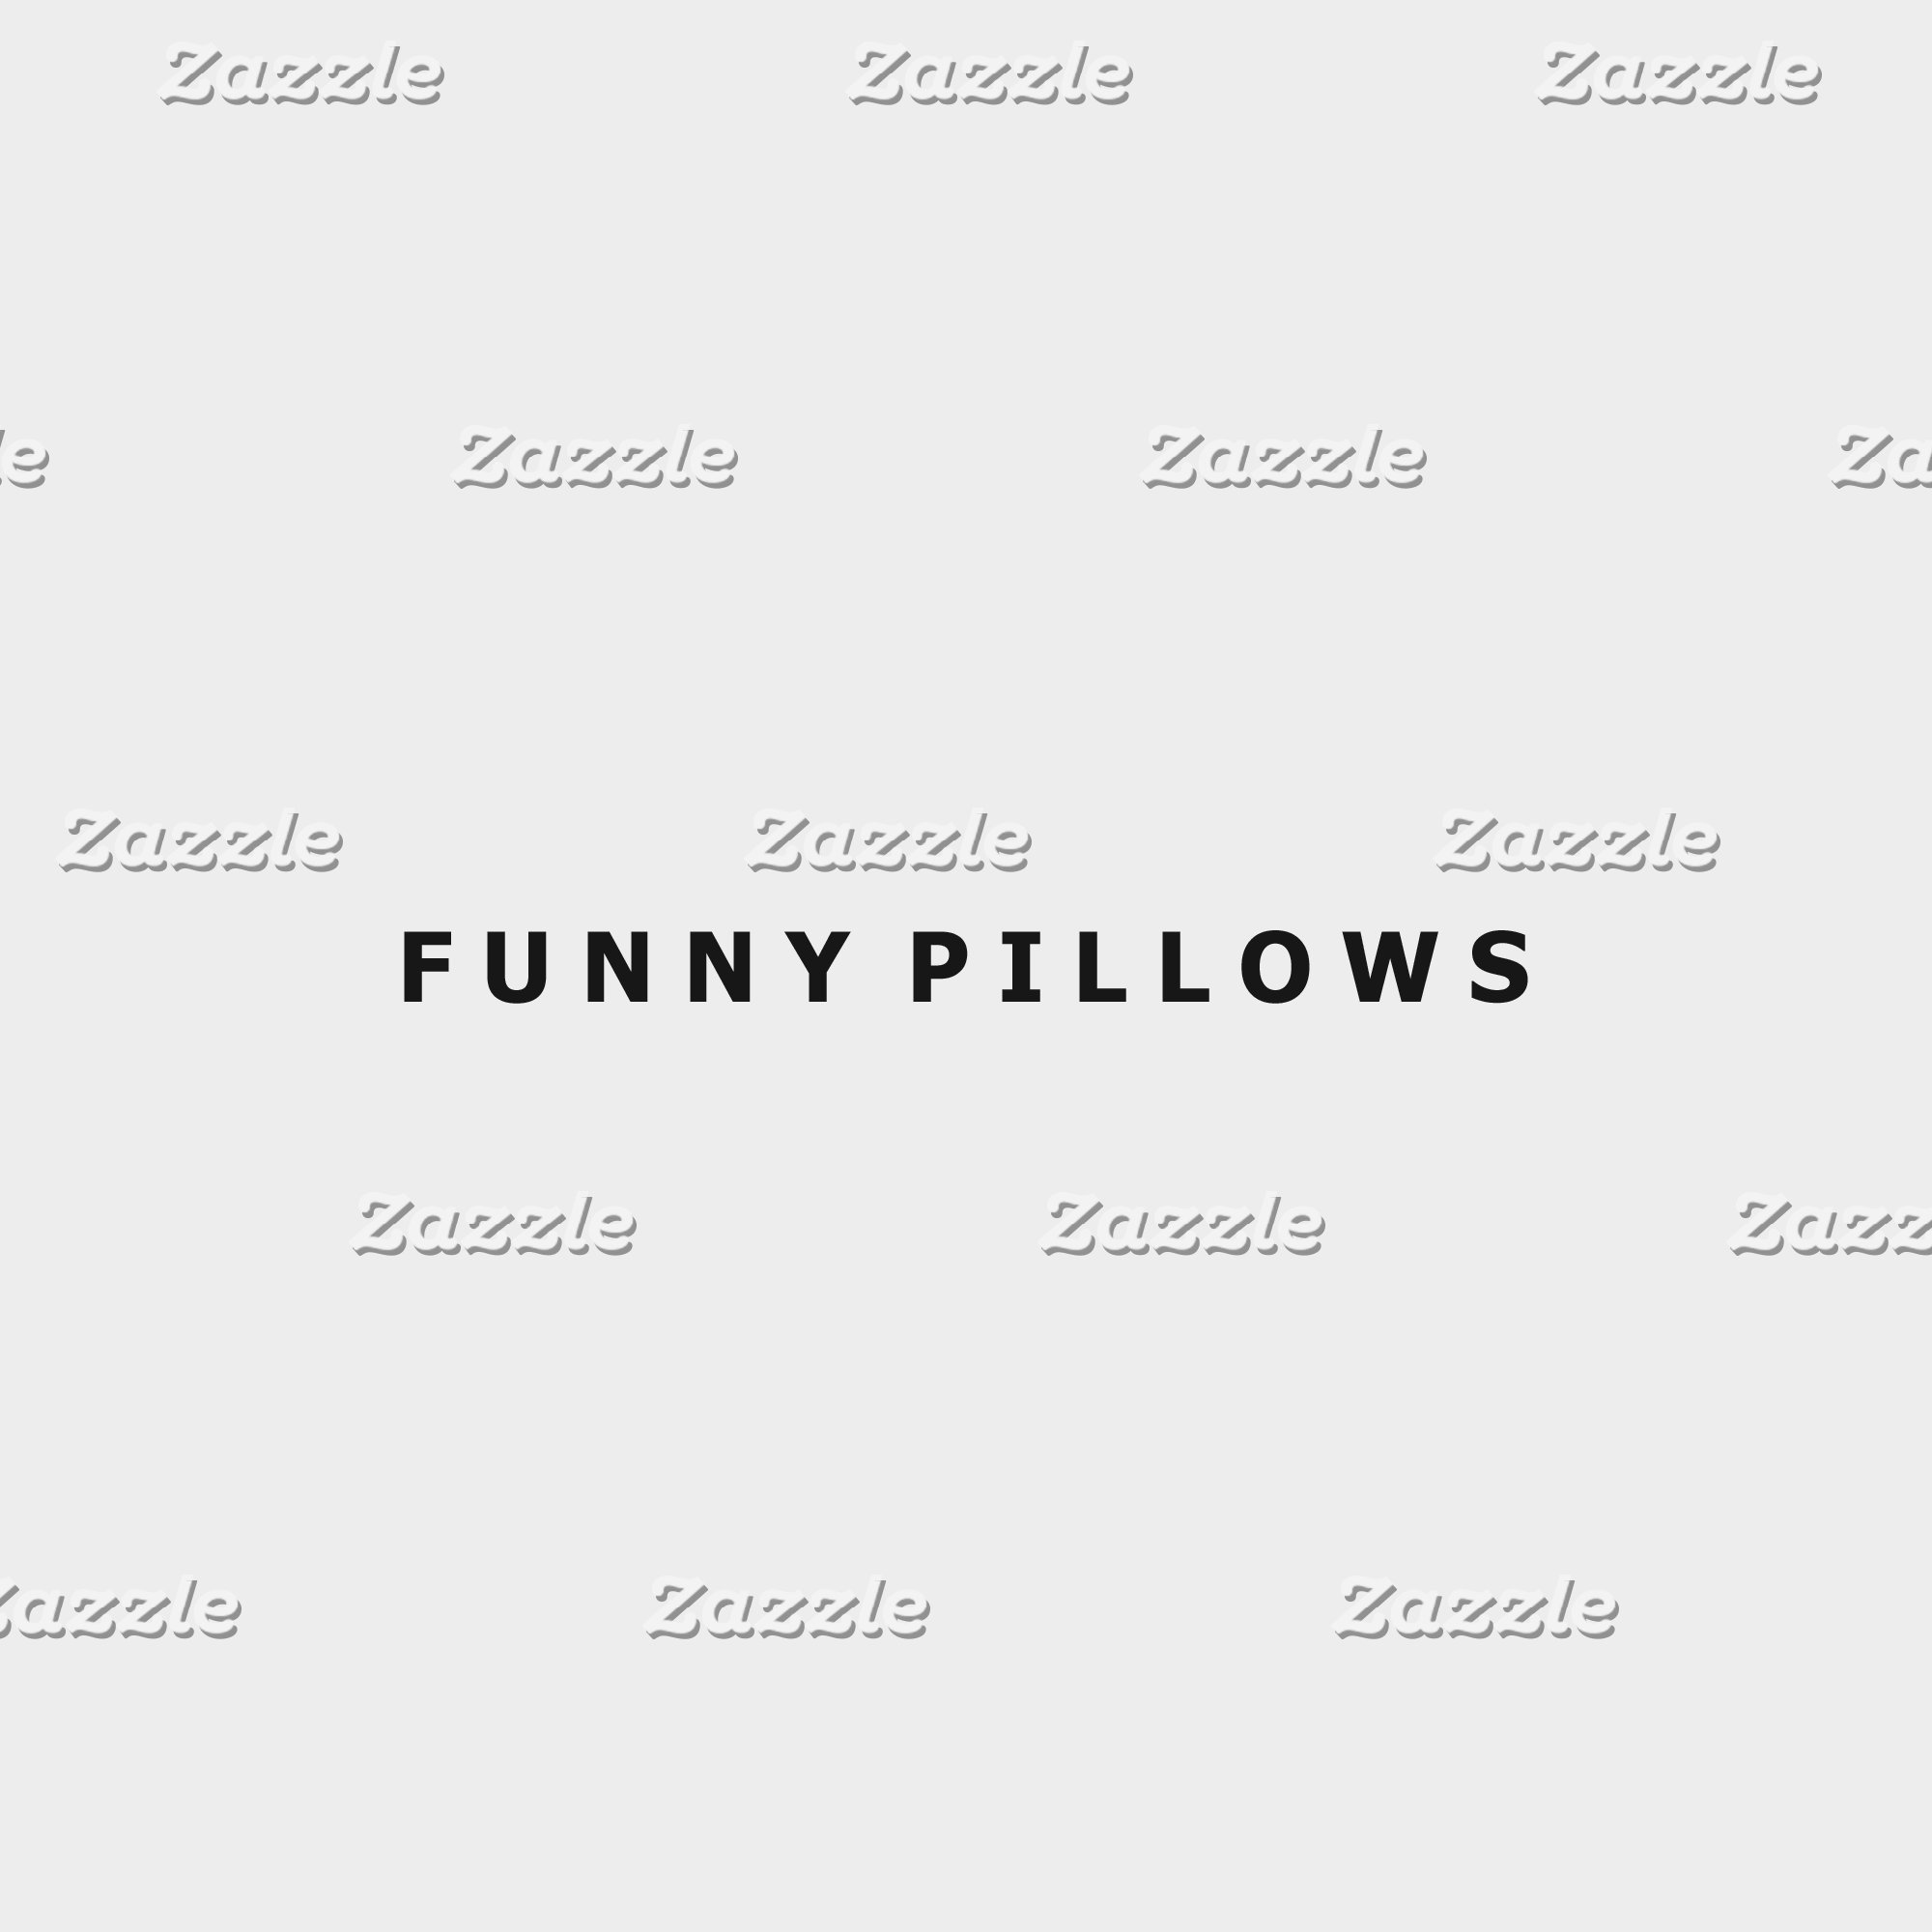 Funny Pillows